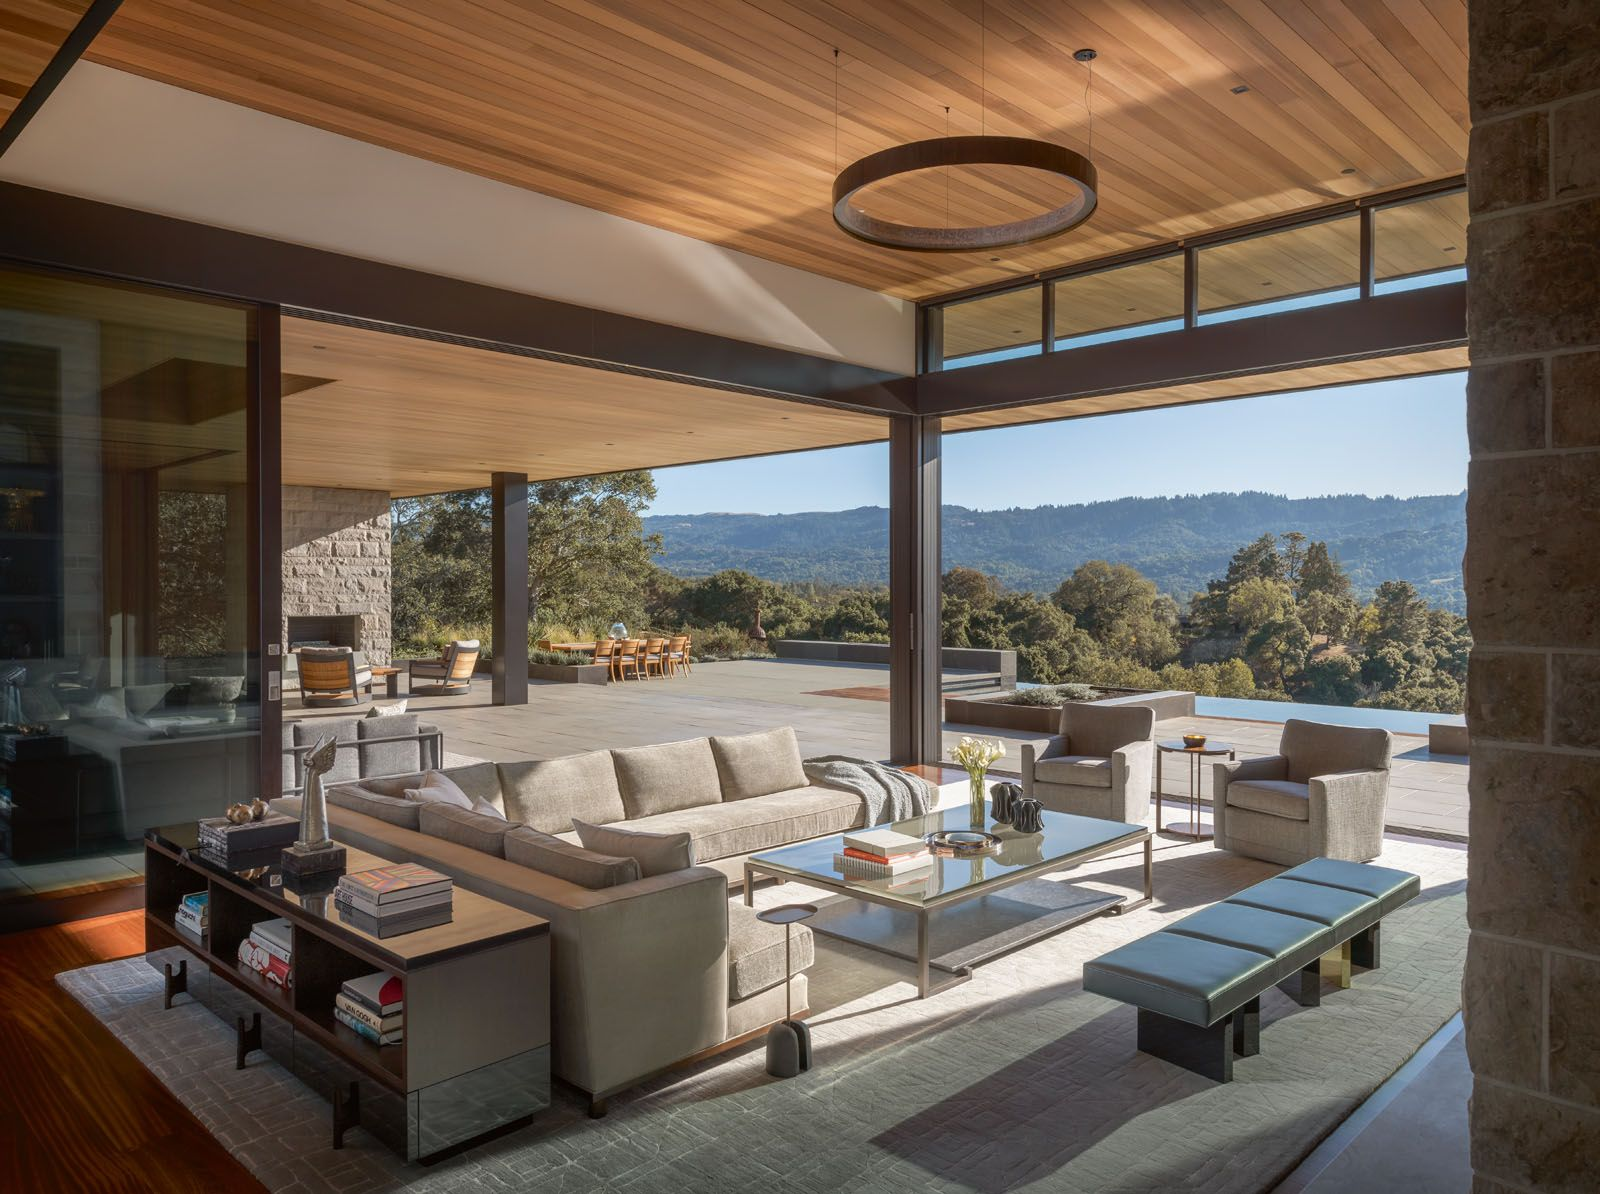 The large outdoor terrace offers ample space for outdoor dining and meditation